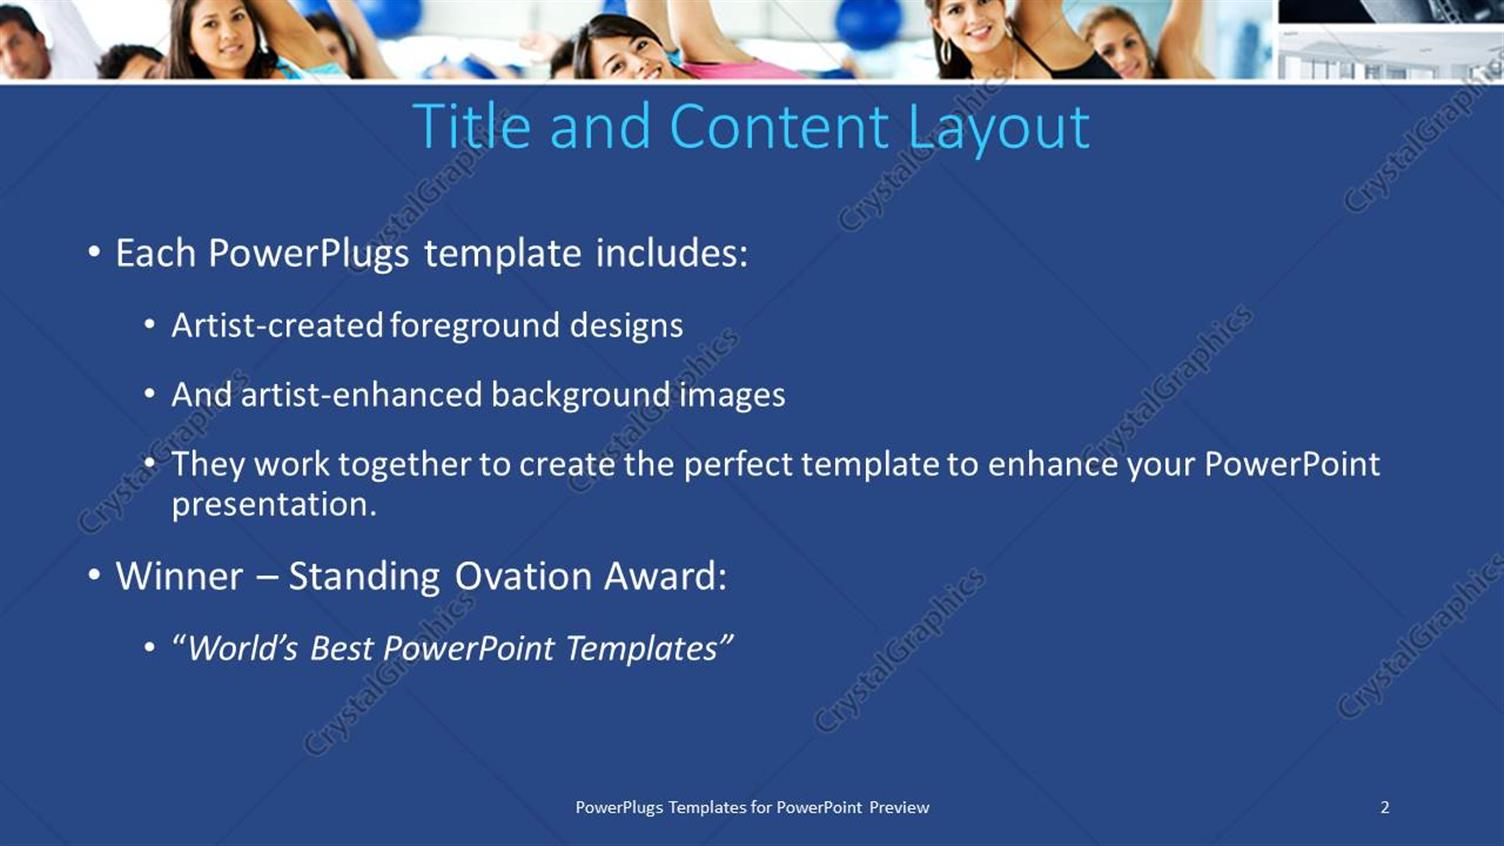 Powerpoint template group zumba class yoga exercise stretching blue powerpoint products templates secure toneelgroepblik Choice Image